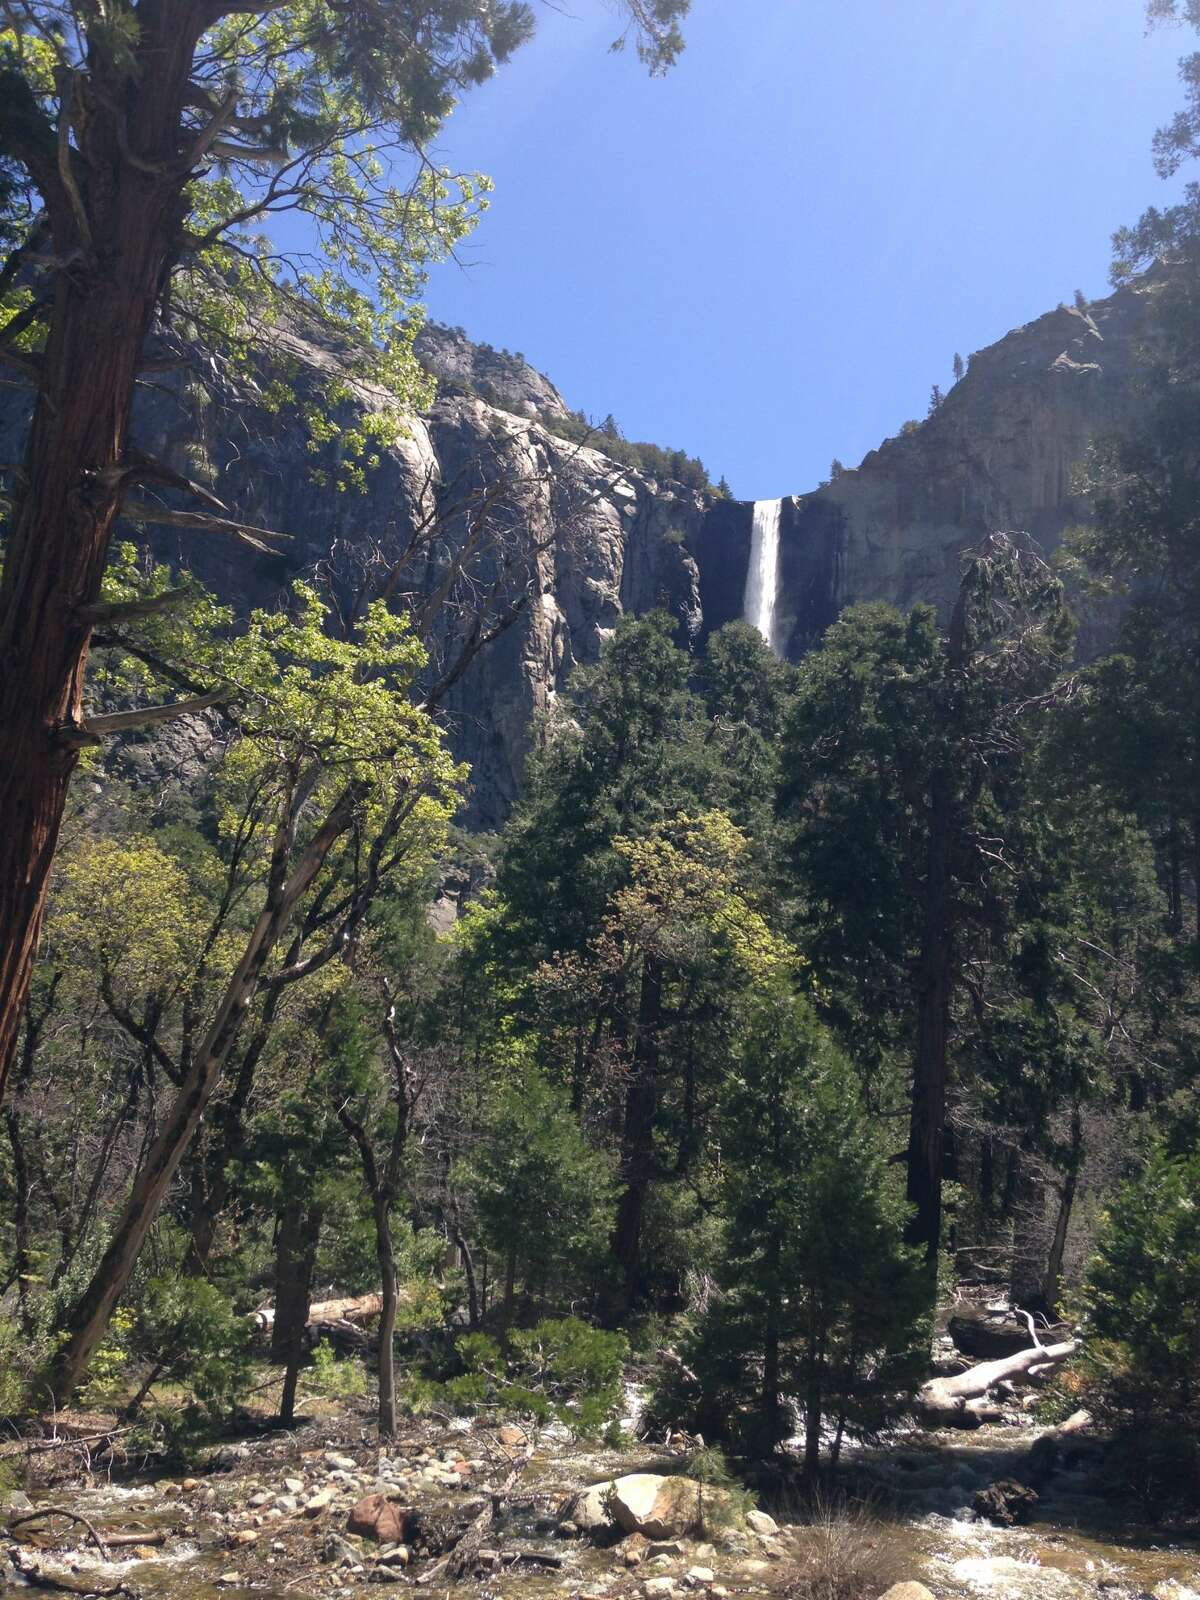 Bridalveil Fall as seen from the Yosemite Valley floor, May 2016.